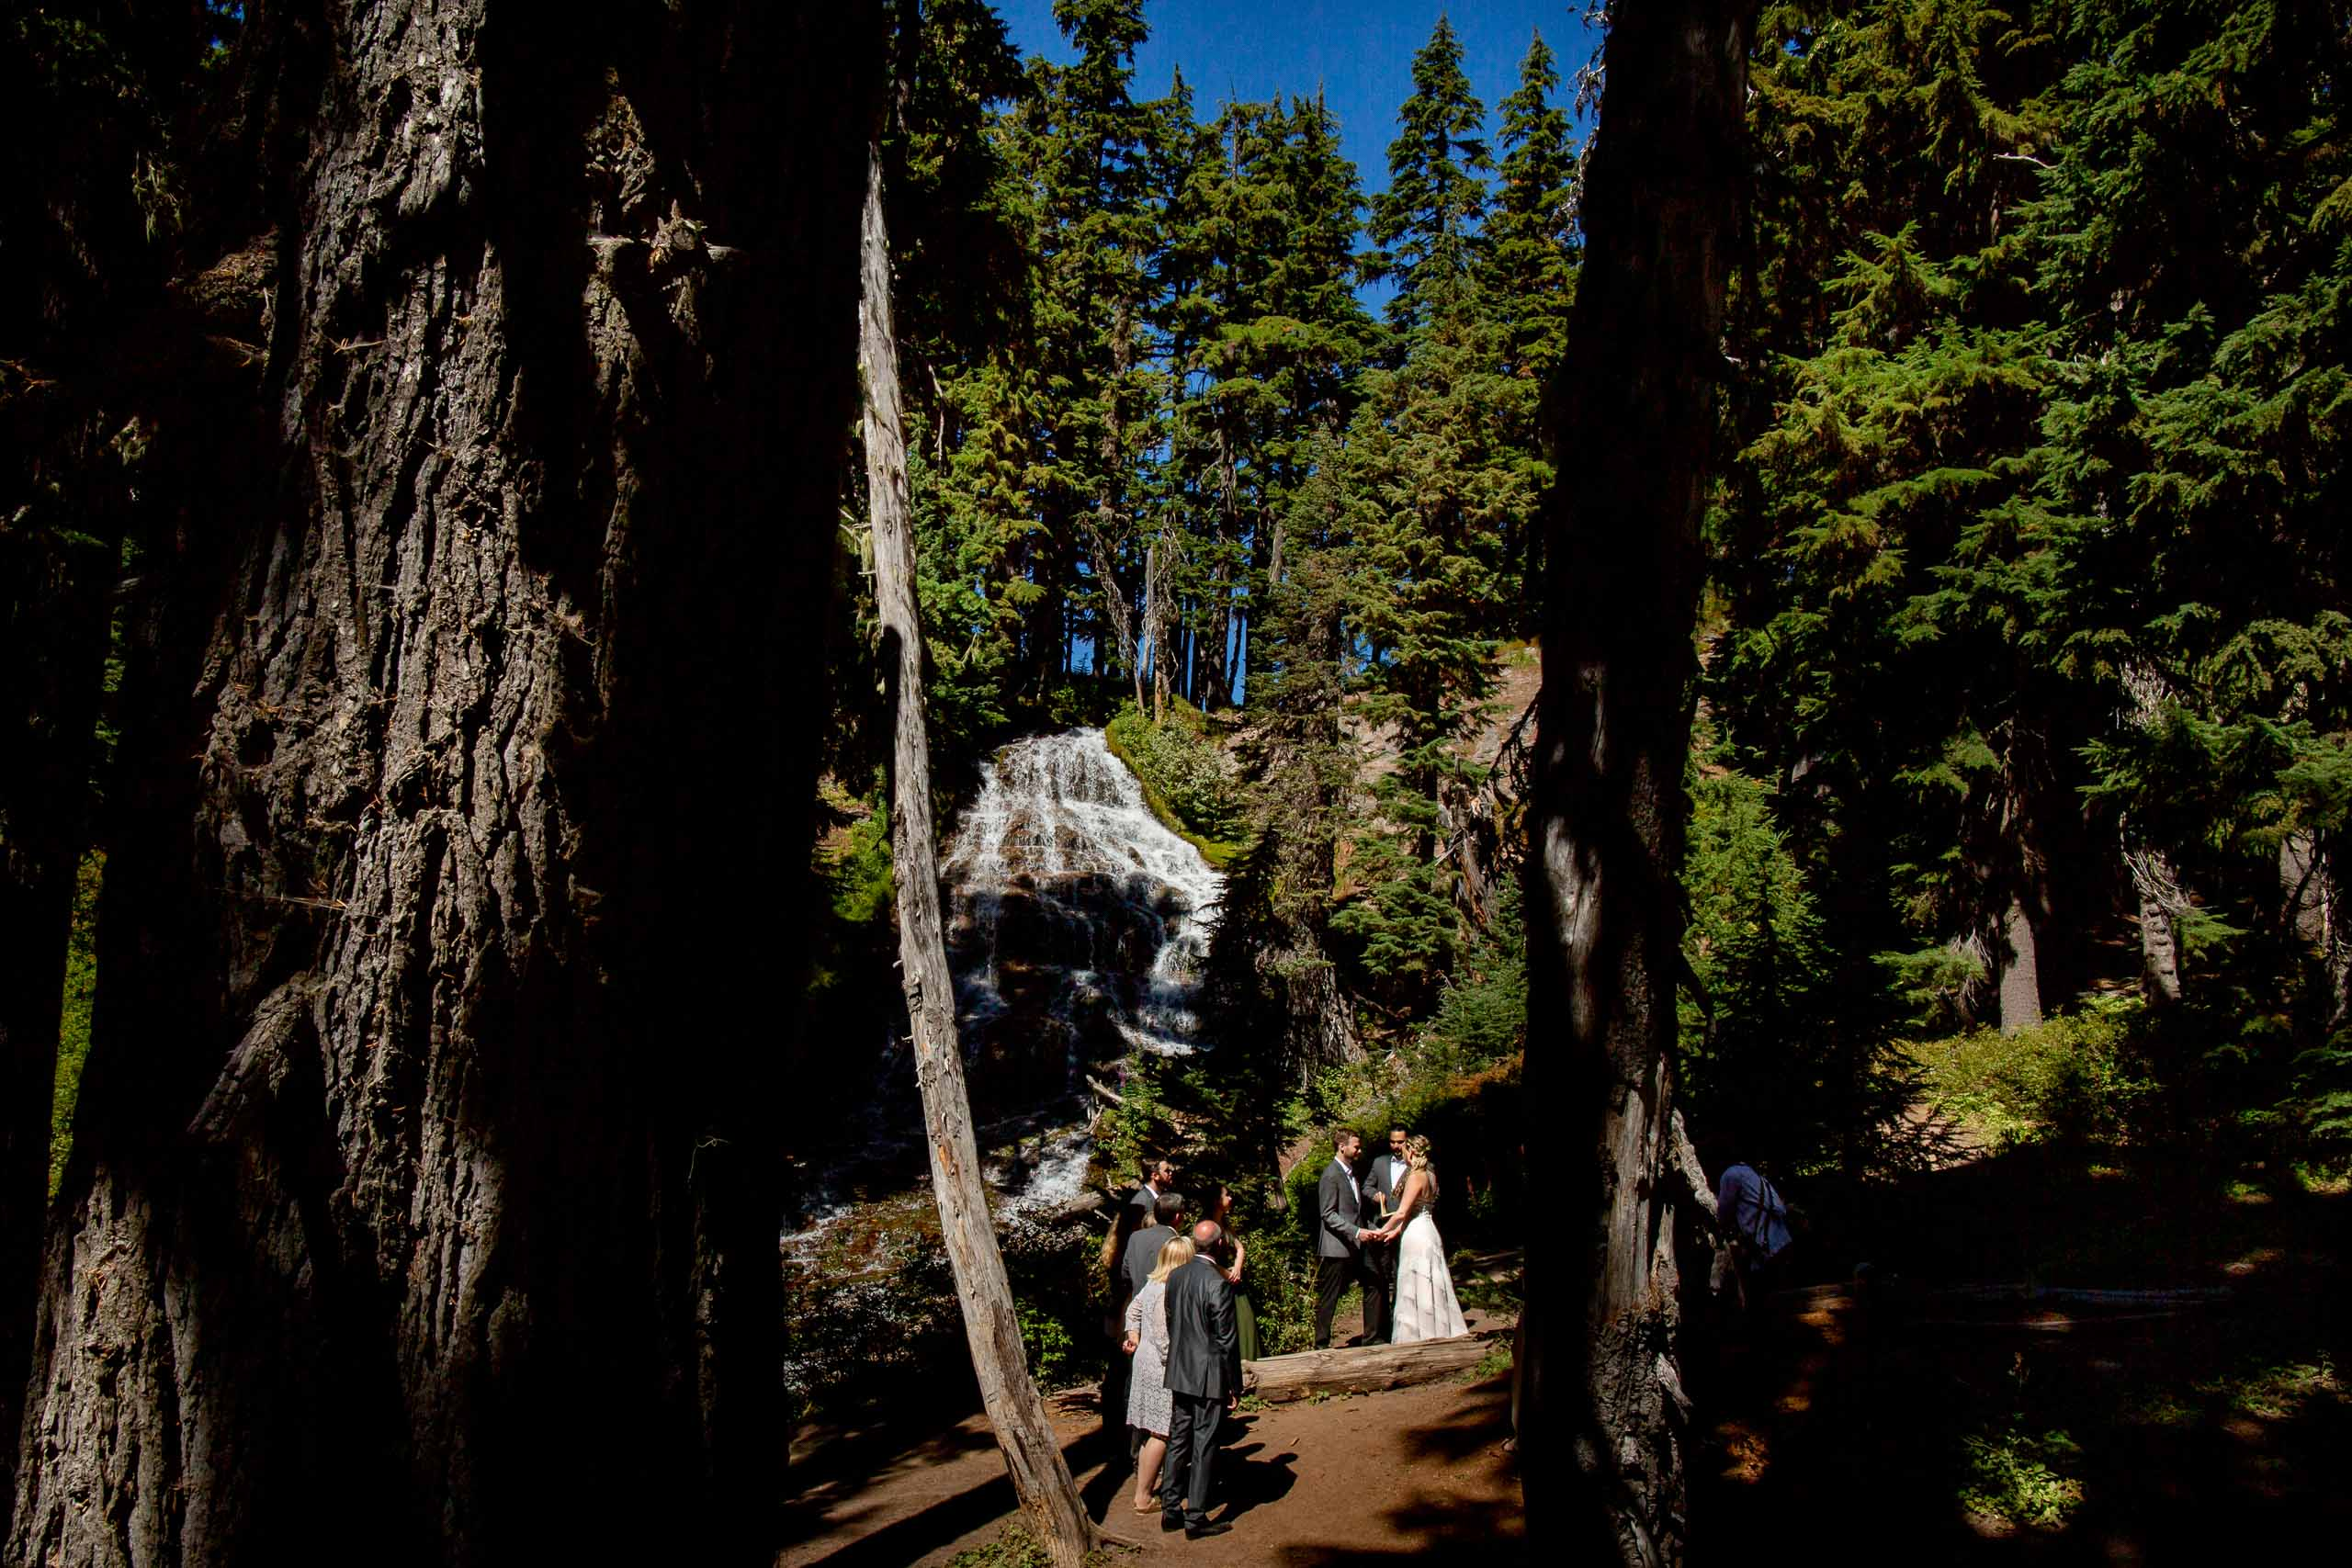 Bride and groom exchanging vows during their Mt Hood Meadows wedding at Umbrella Falls